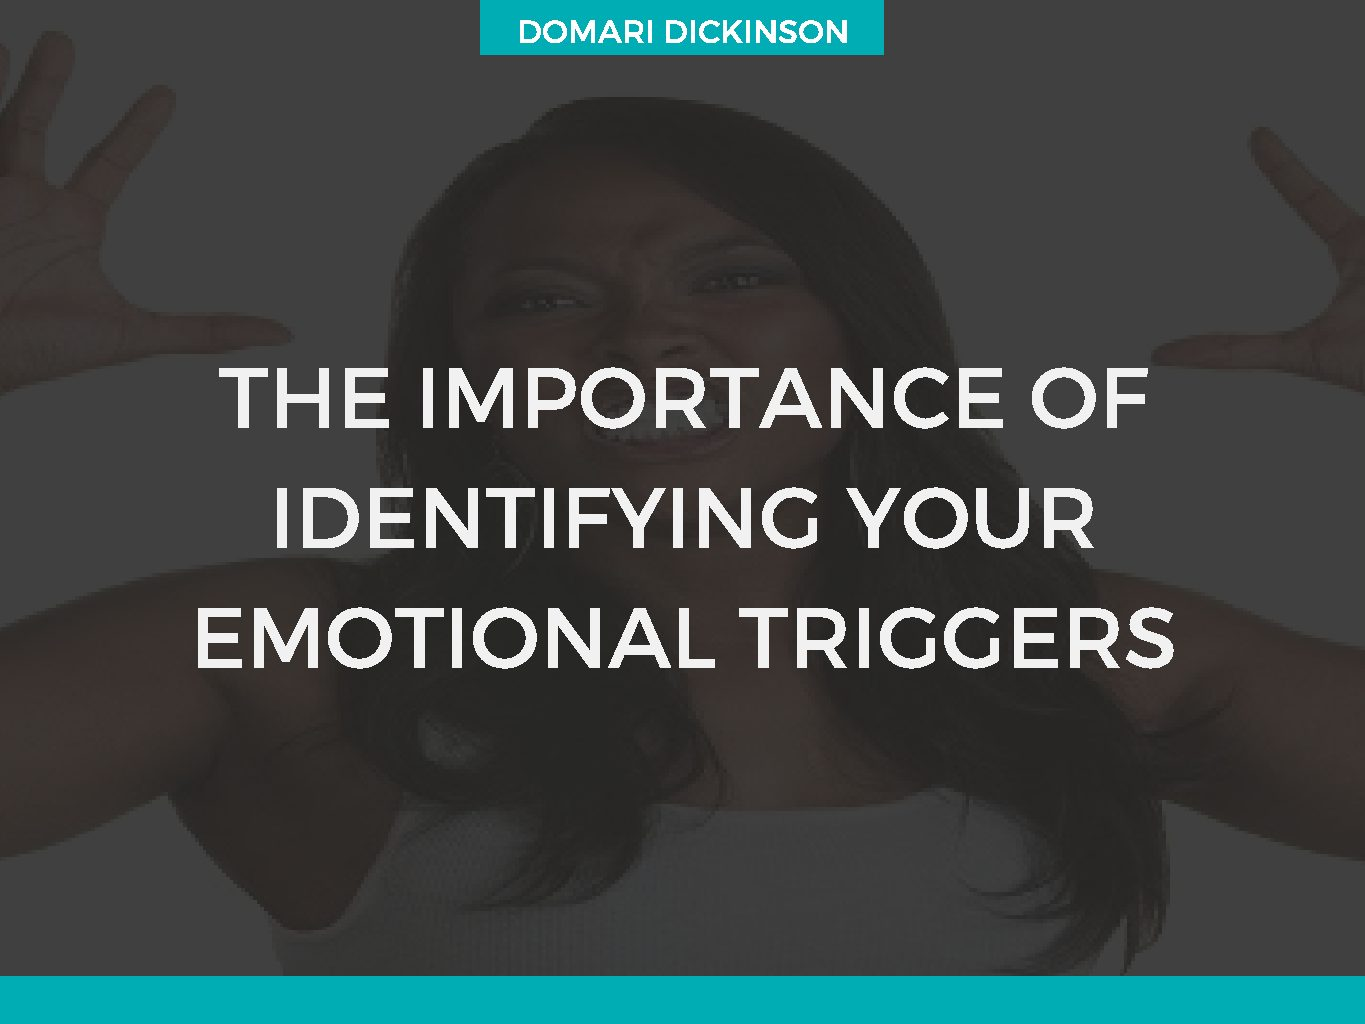 The Importance of Identifying Your Emotional Triggers